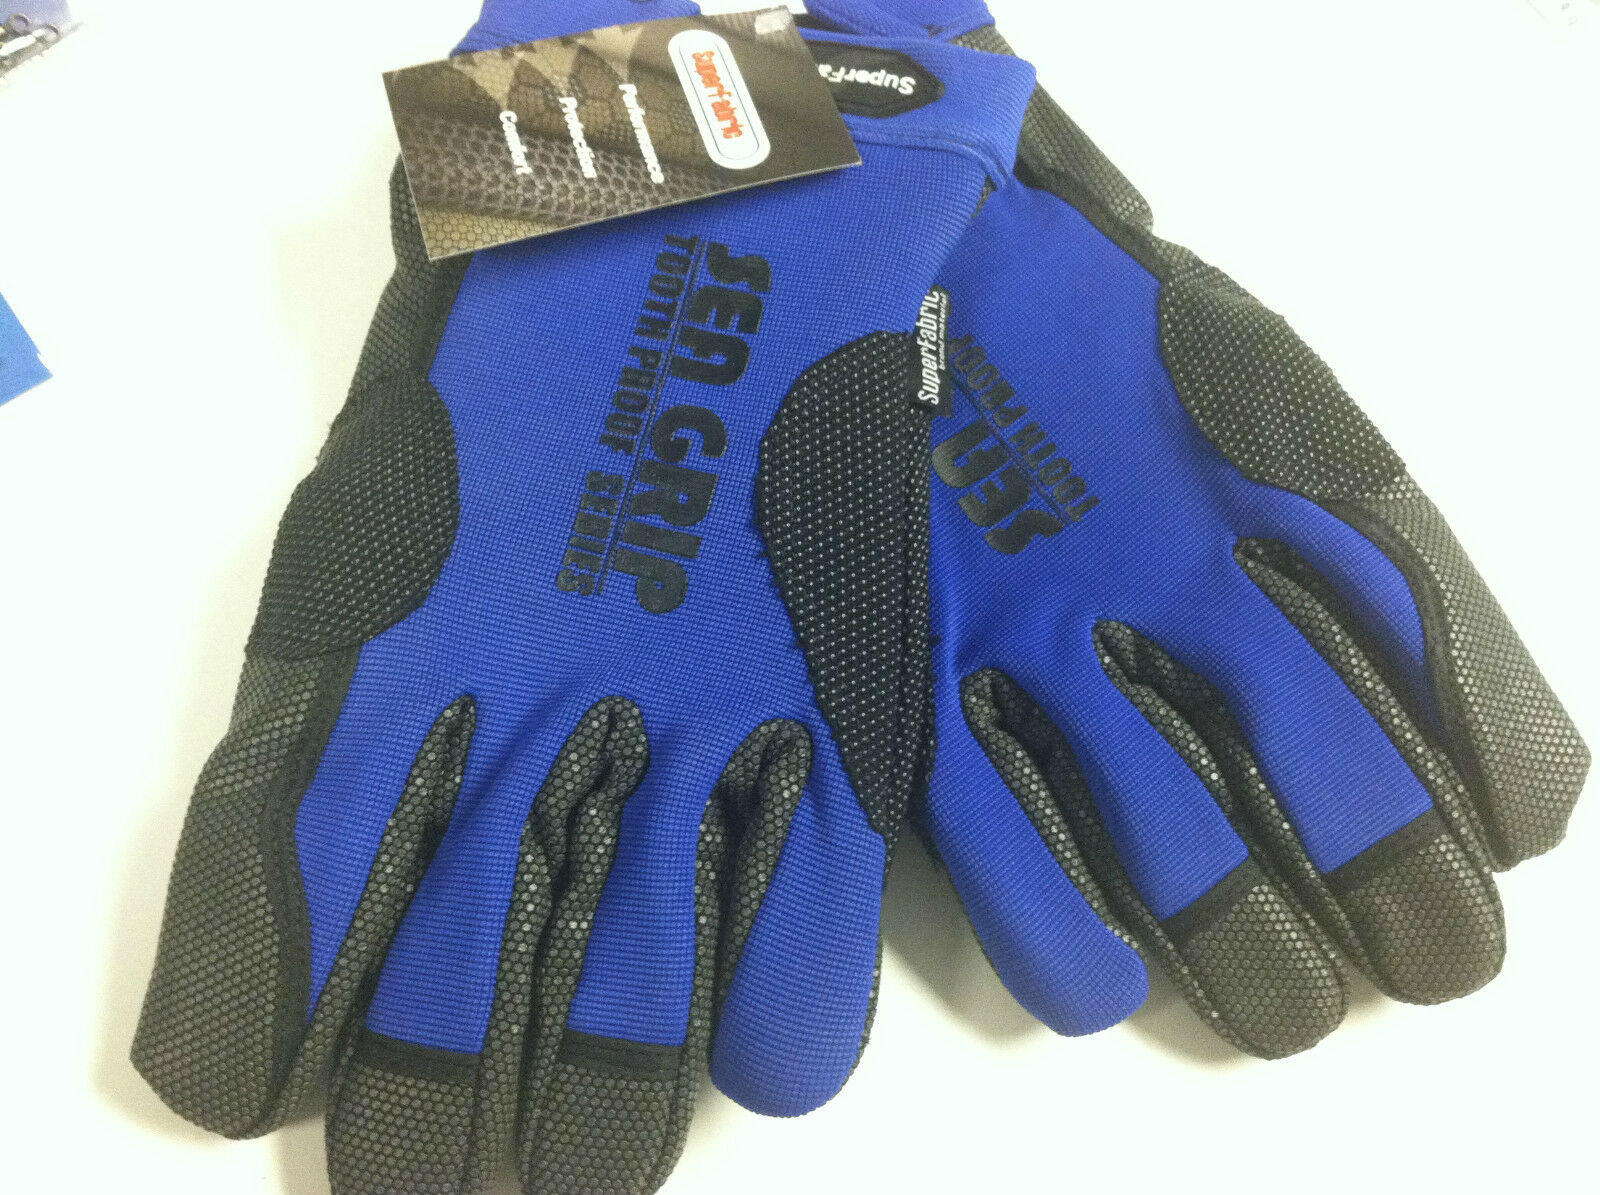 AFW SEA GRIP SUPER FABRIC OFFSHORE GLOVES - blu - ULTIMATE PROTECTION